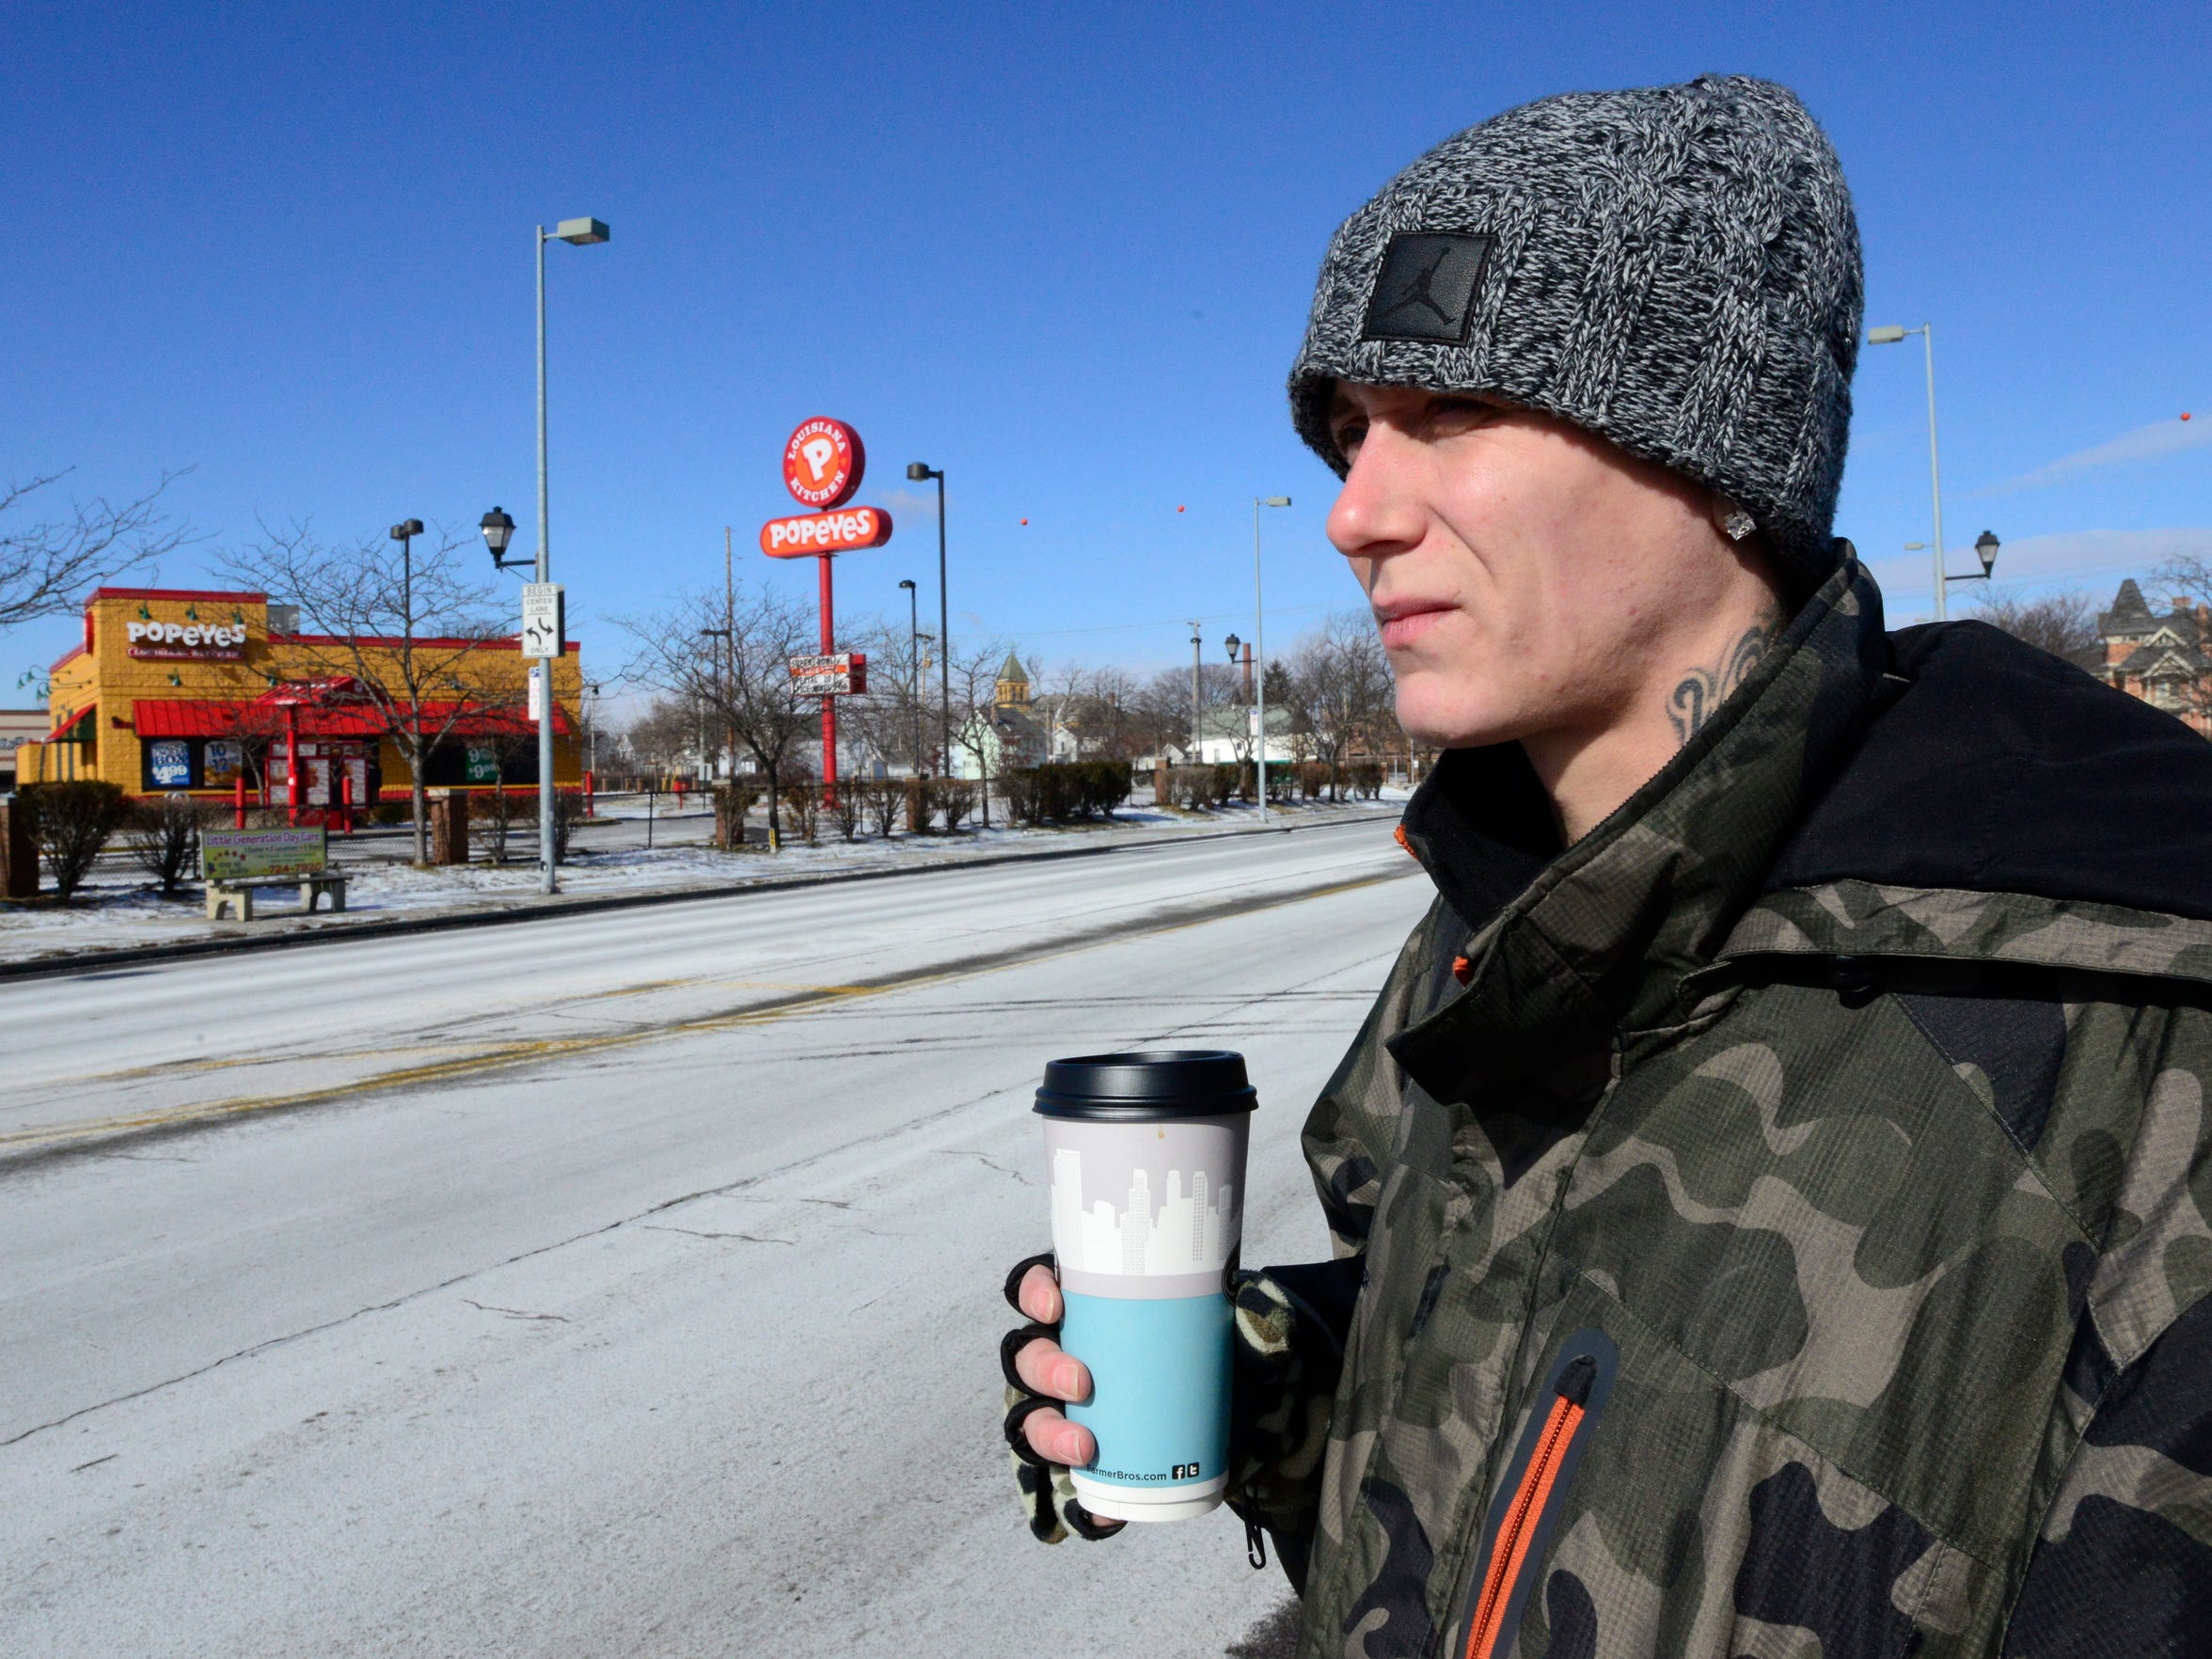 Kyle Wyss has been homeless because of heroin addiction.